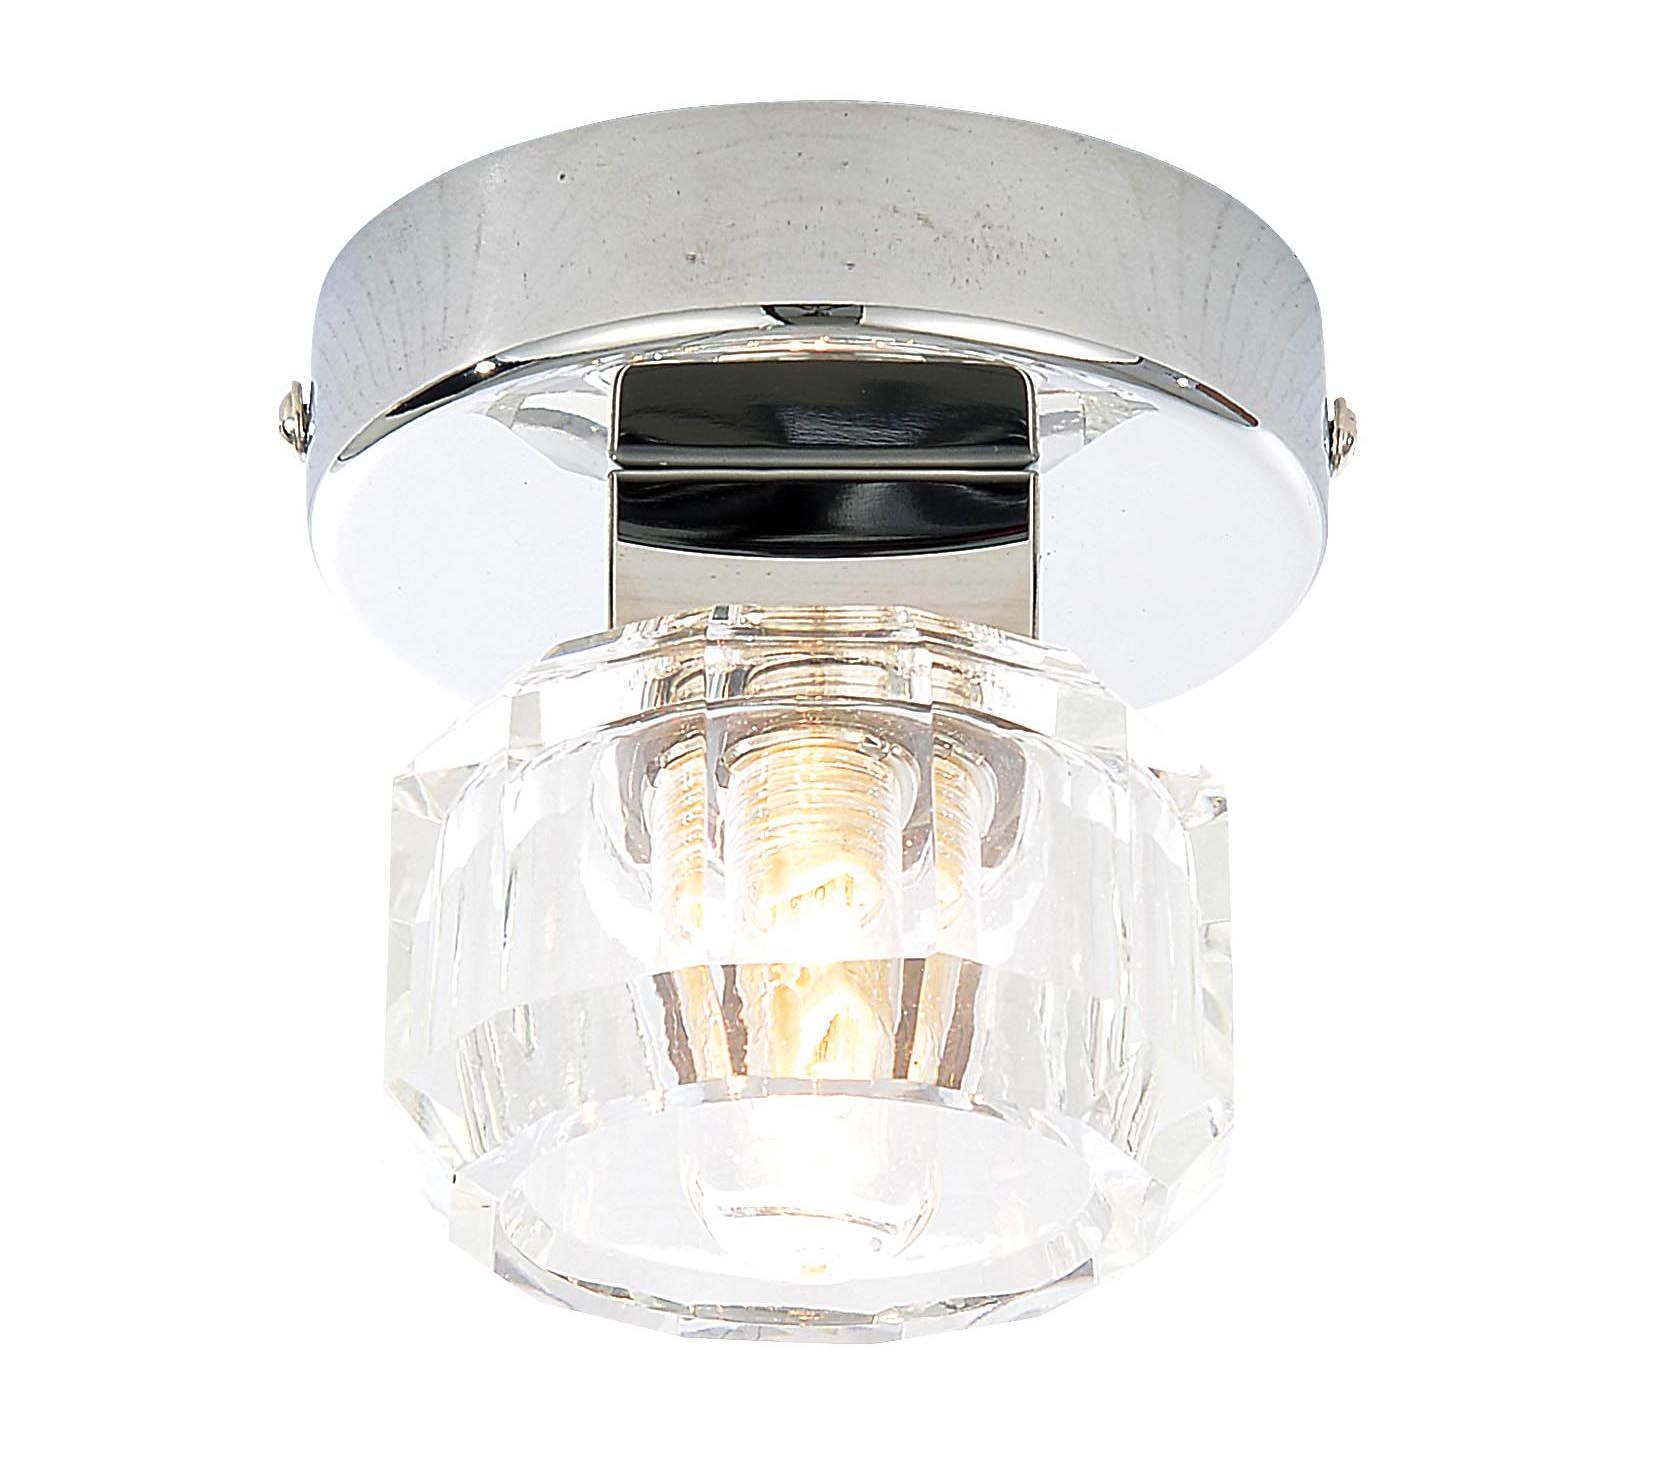 Apsley Clear Chrome Effect Bathroom Ceiling Light